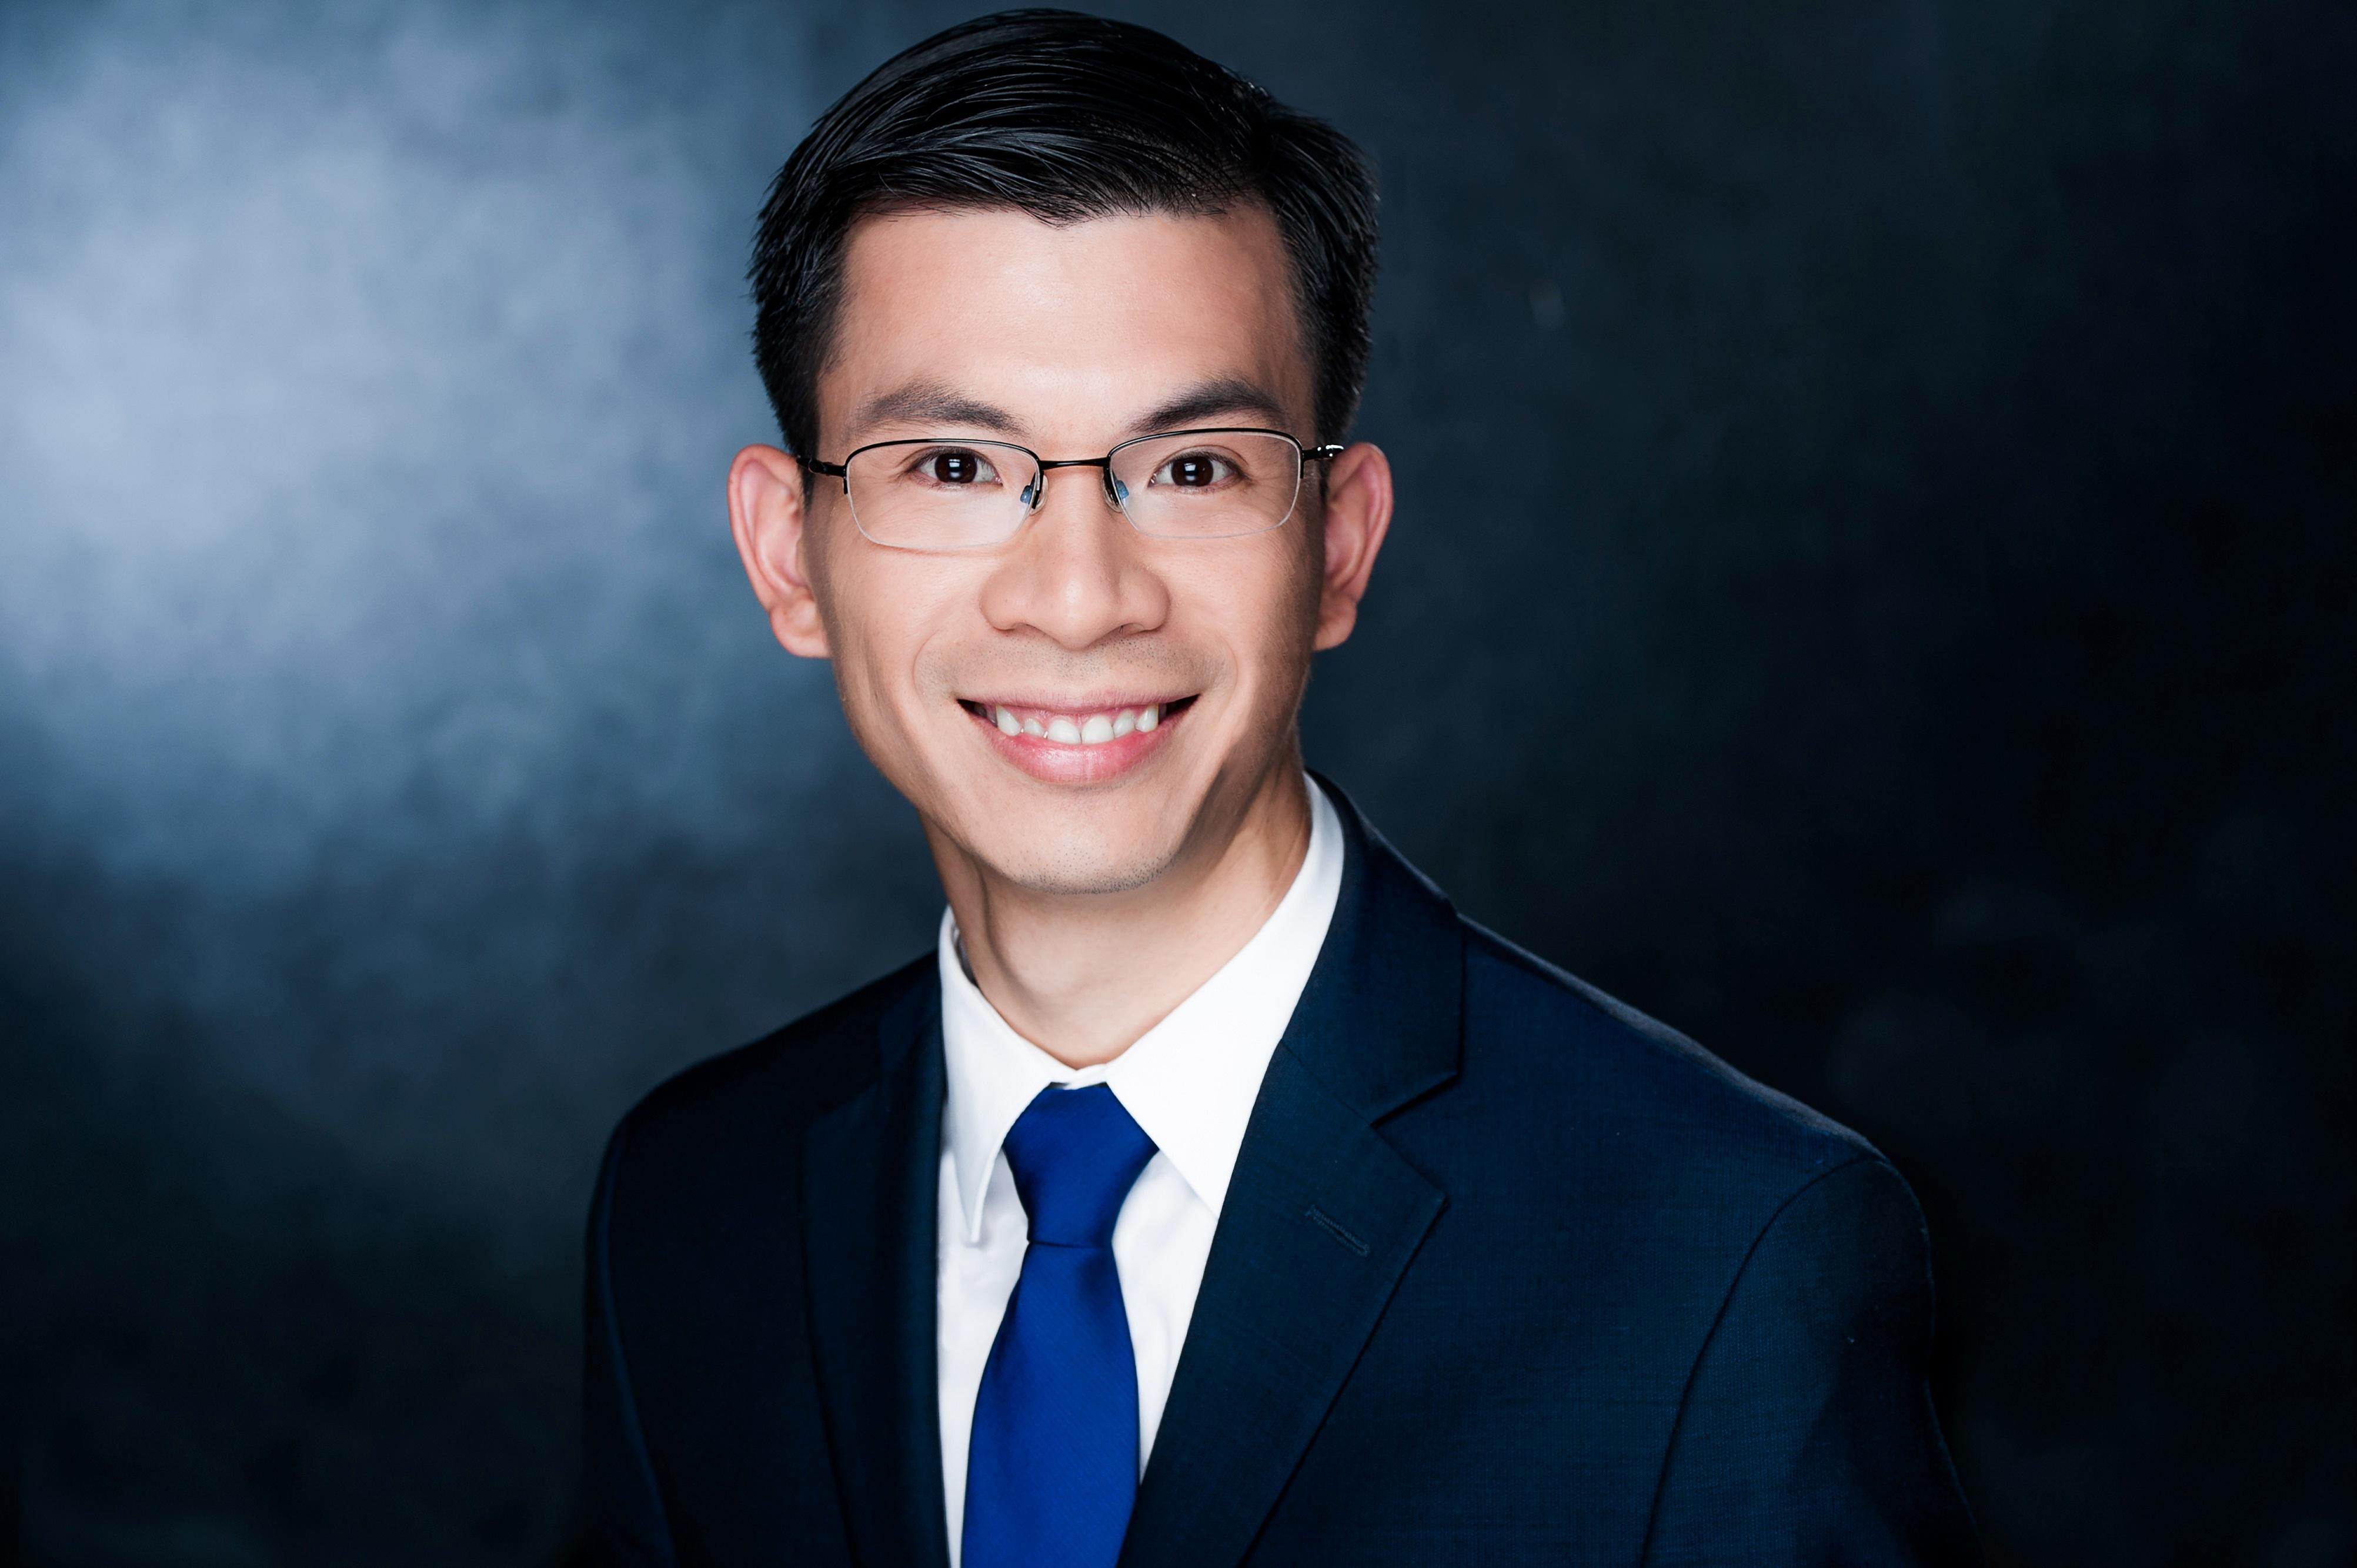 MINH QUANG HUYNH Financial Professional & Insurance Agent